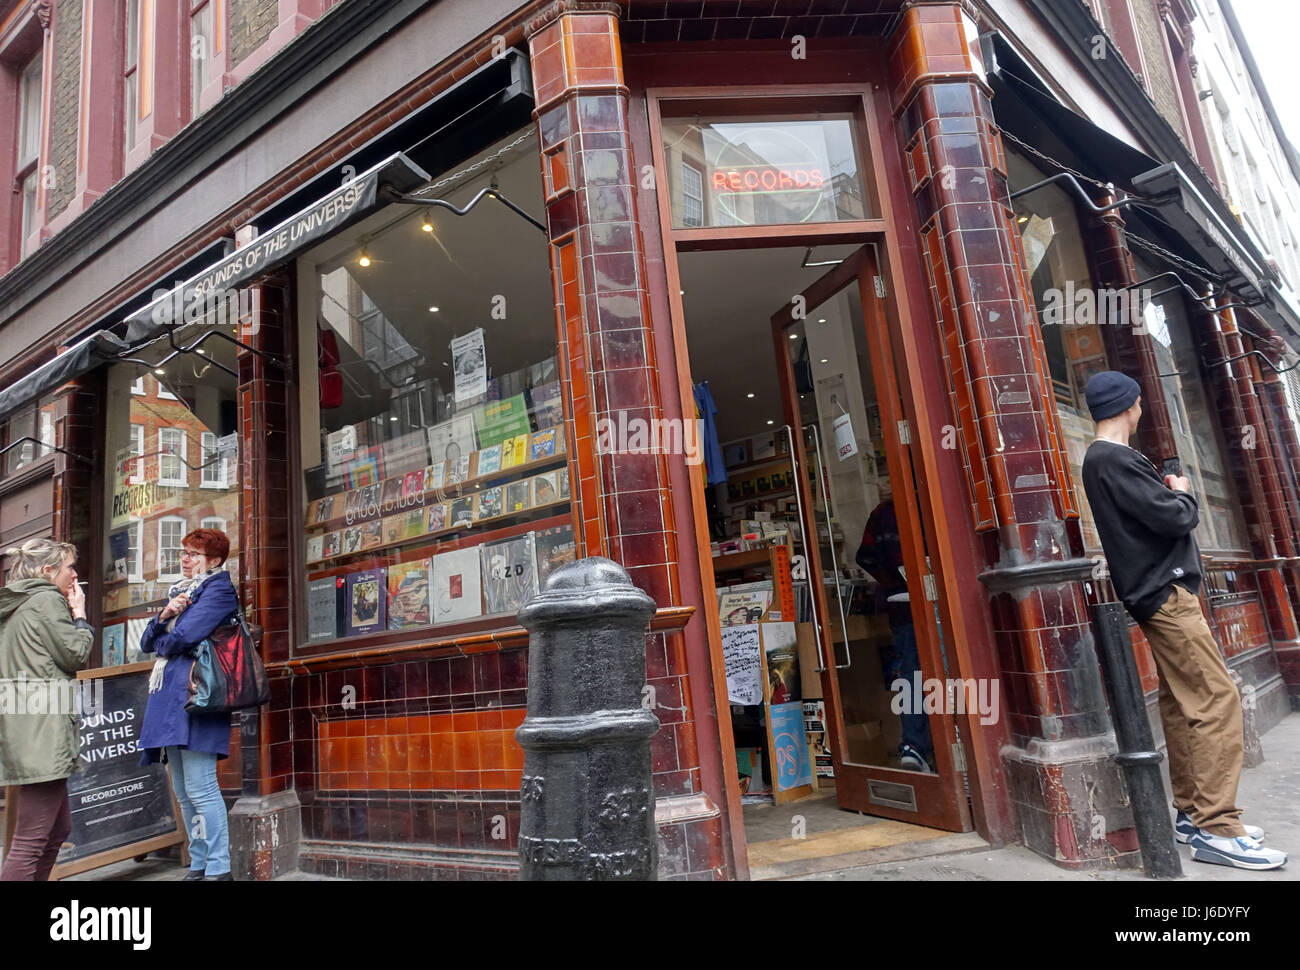 Sounds of the Universe specialist record shop in Soho, London - Stock Image